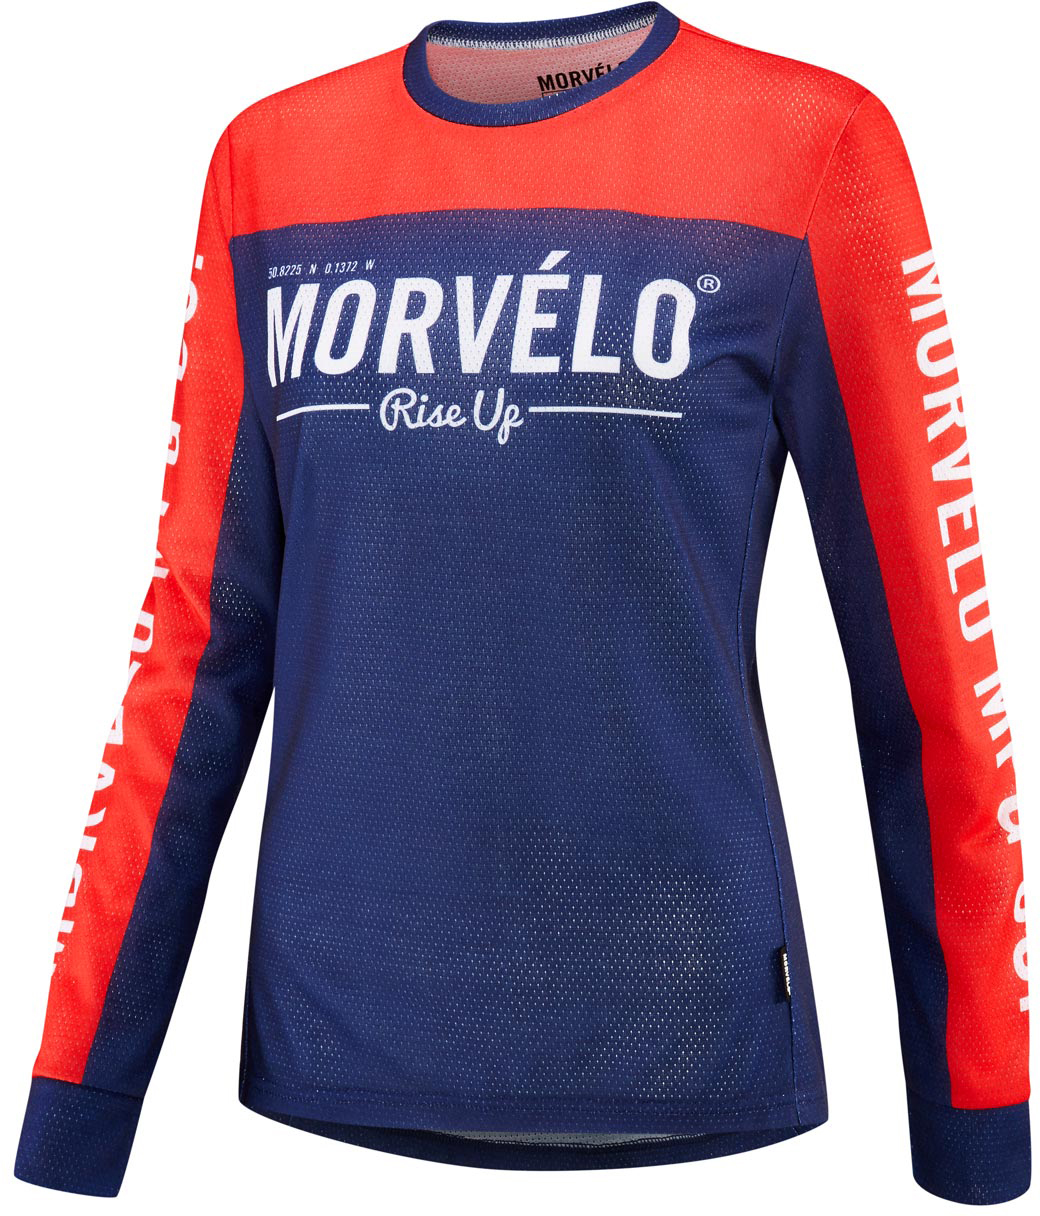 Morvelo Women's MFG Long Sleeve MTB Jersey | Jerseys